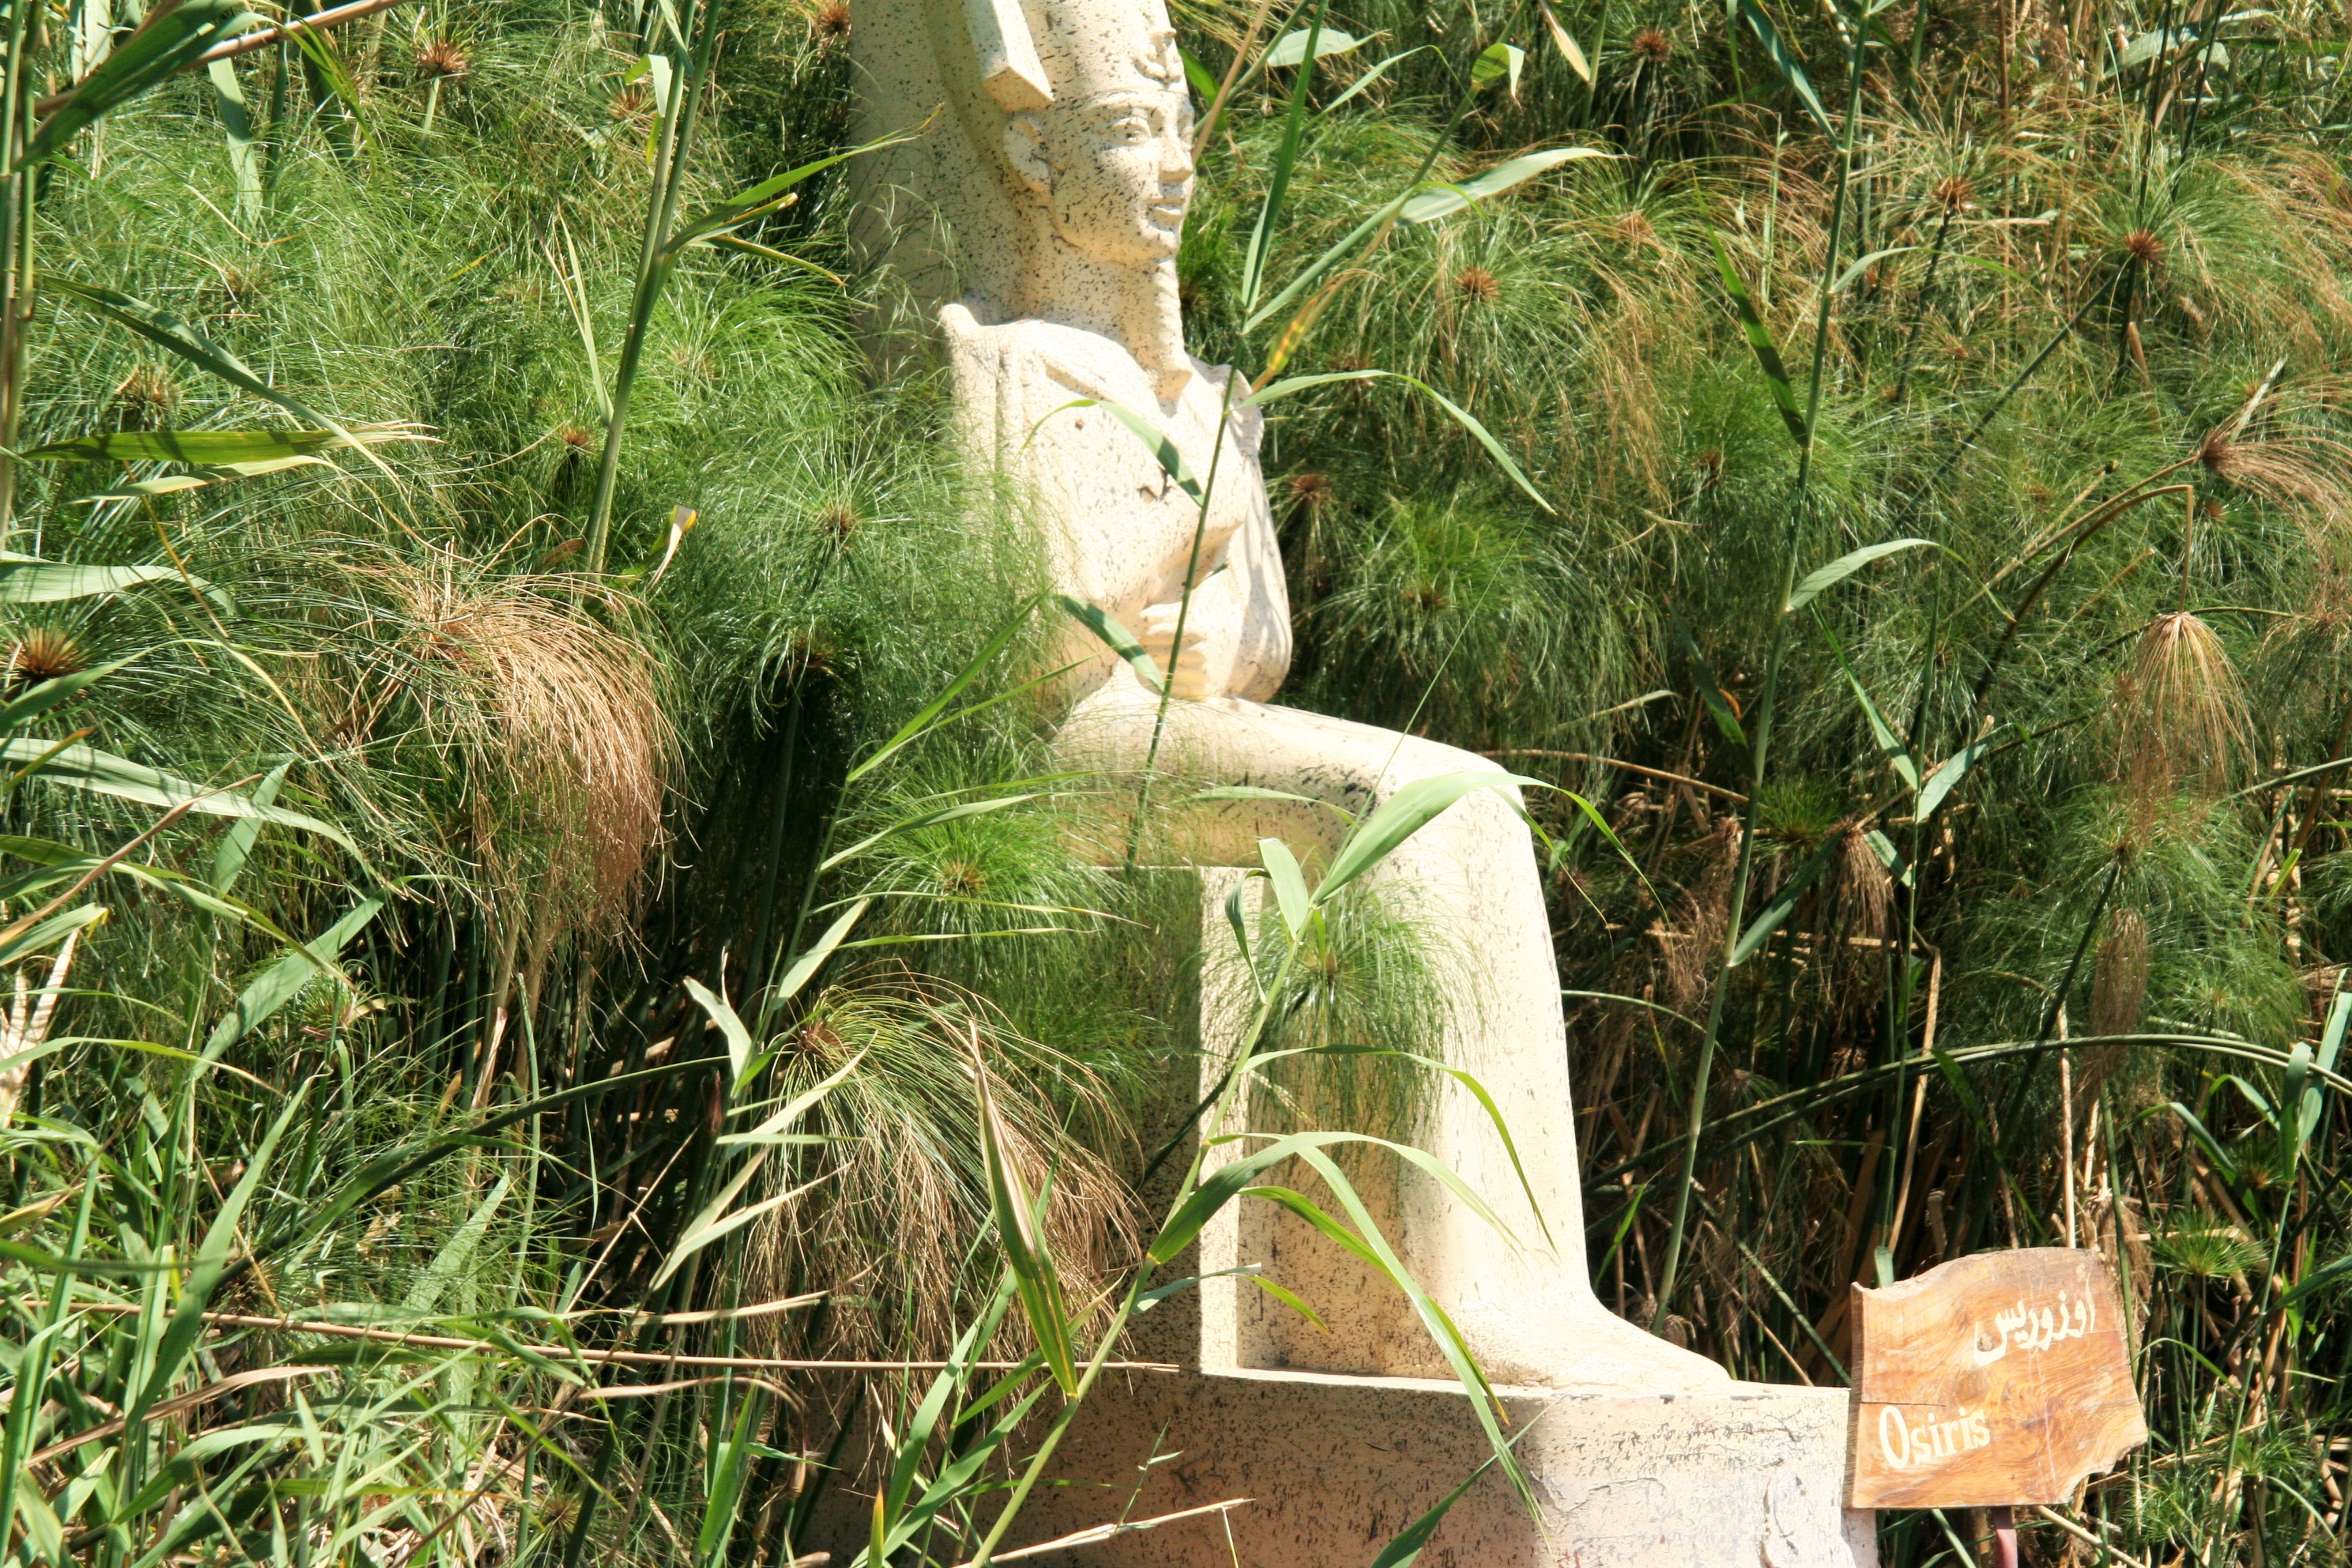 IMG_0040 Statue amid Papyrus on the Nile River, Egypt.jpg